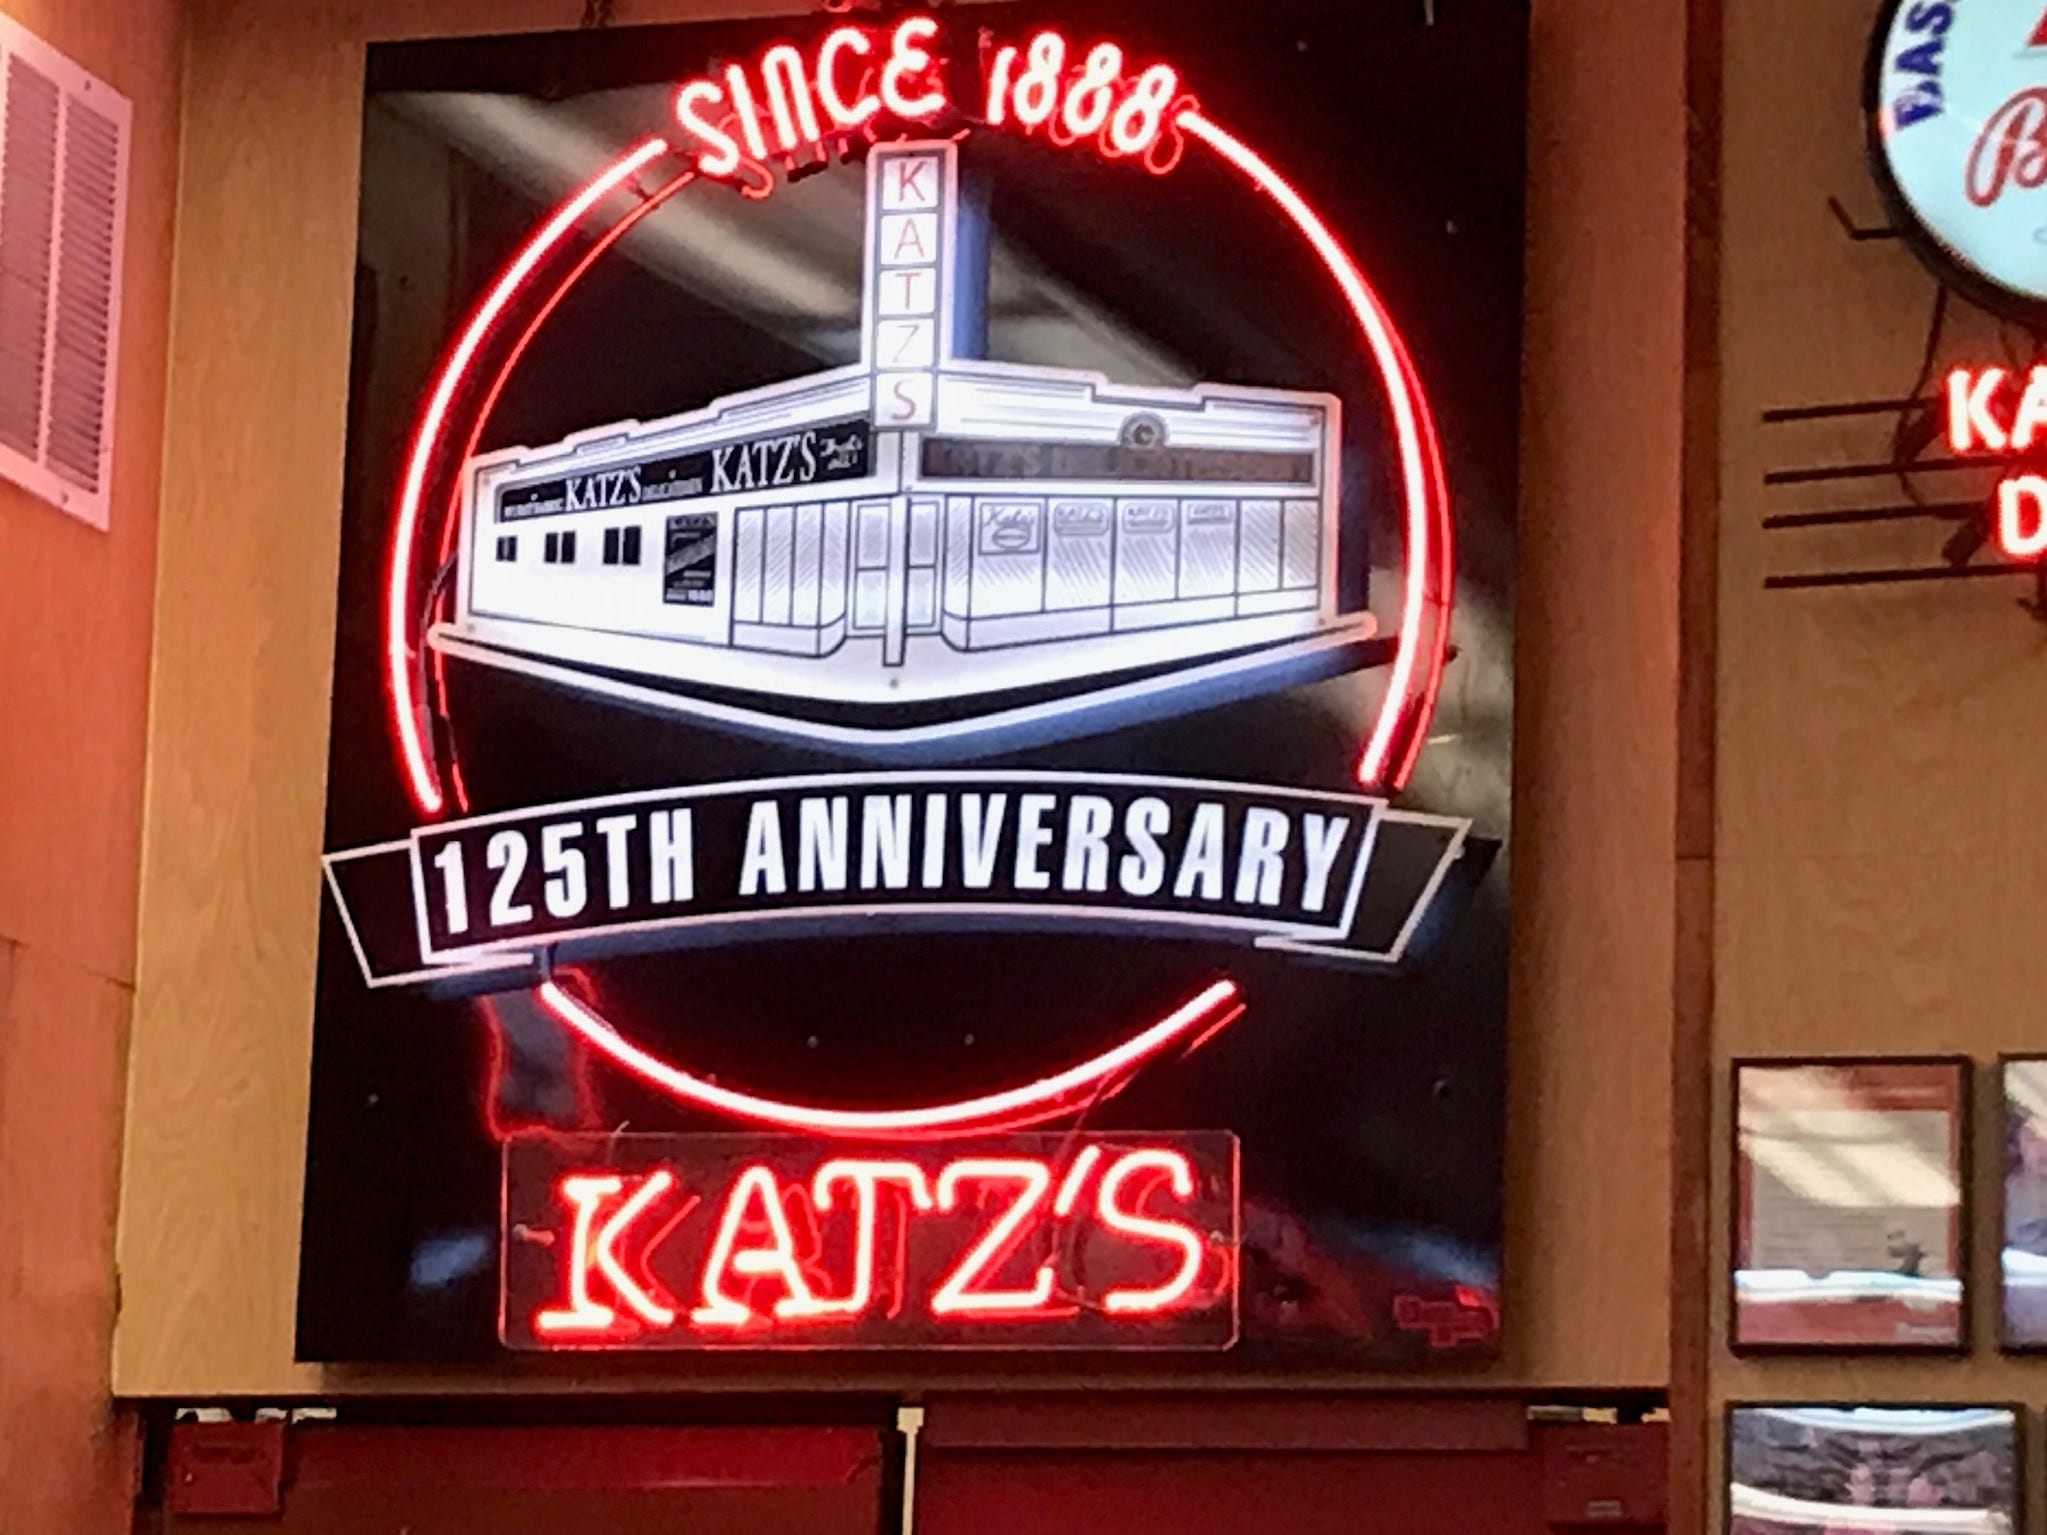 The 125th anniversary neon sign is already dated, since that special occasion happened in 2013.